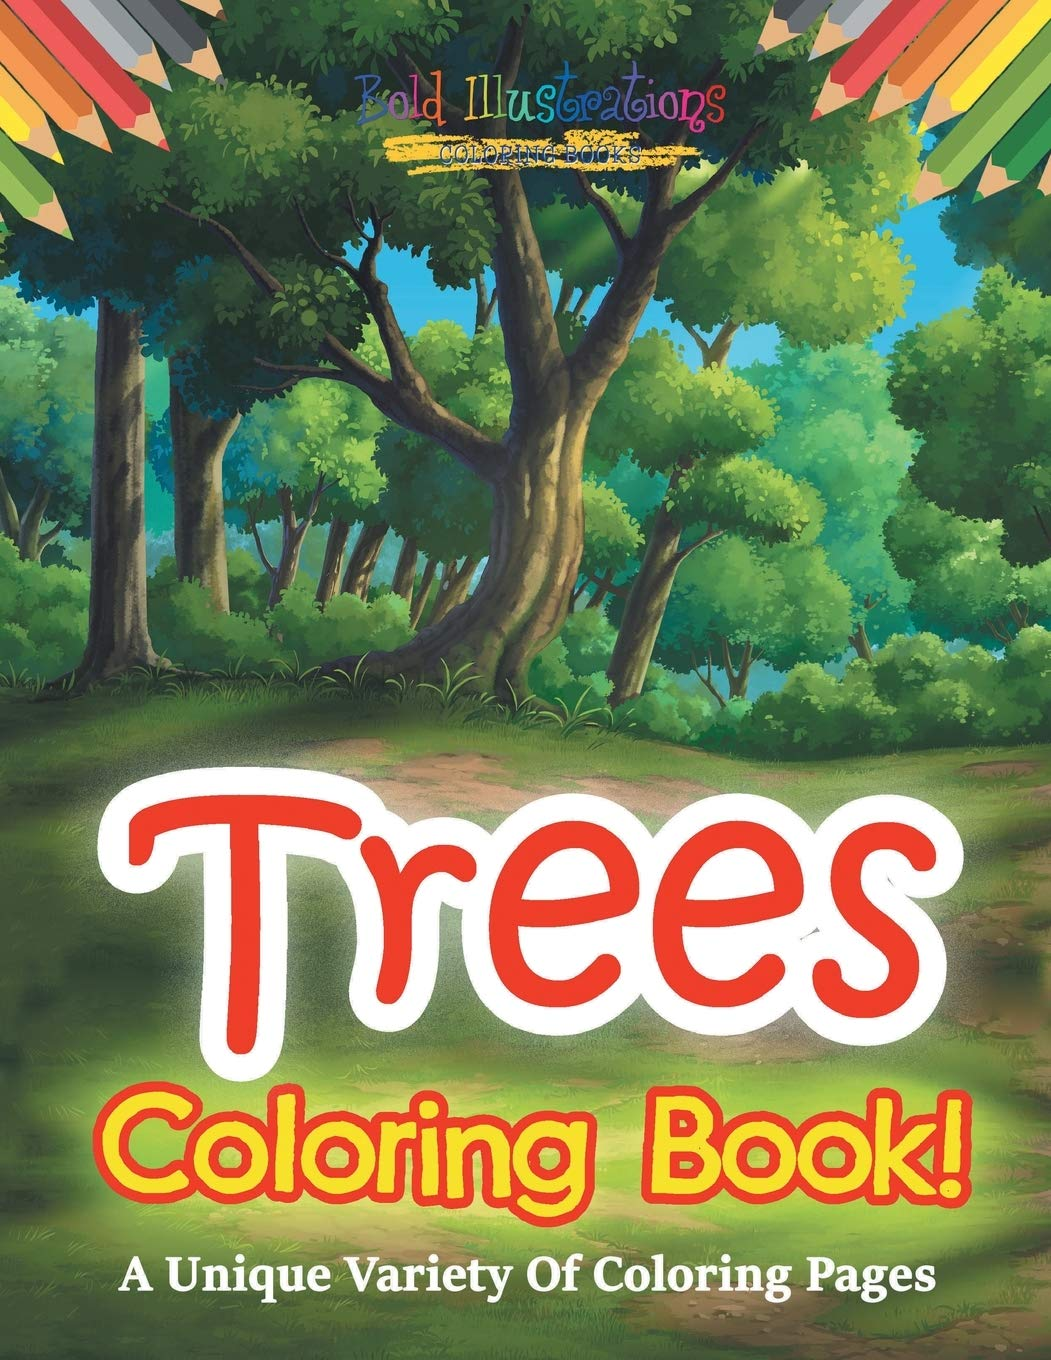 Trees Coloring Book A Unique Variety Of Coloring Pages Illustrations Bold 9781641937382 Amazon Com Books